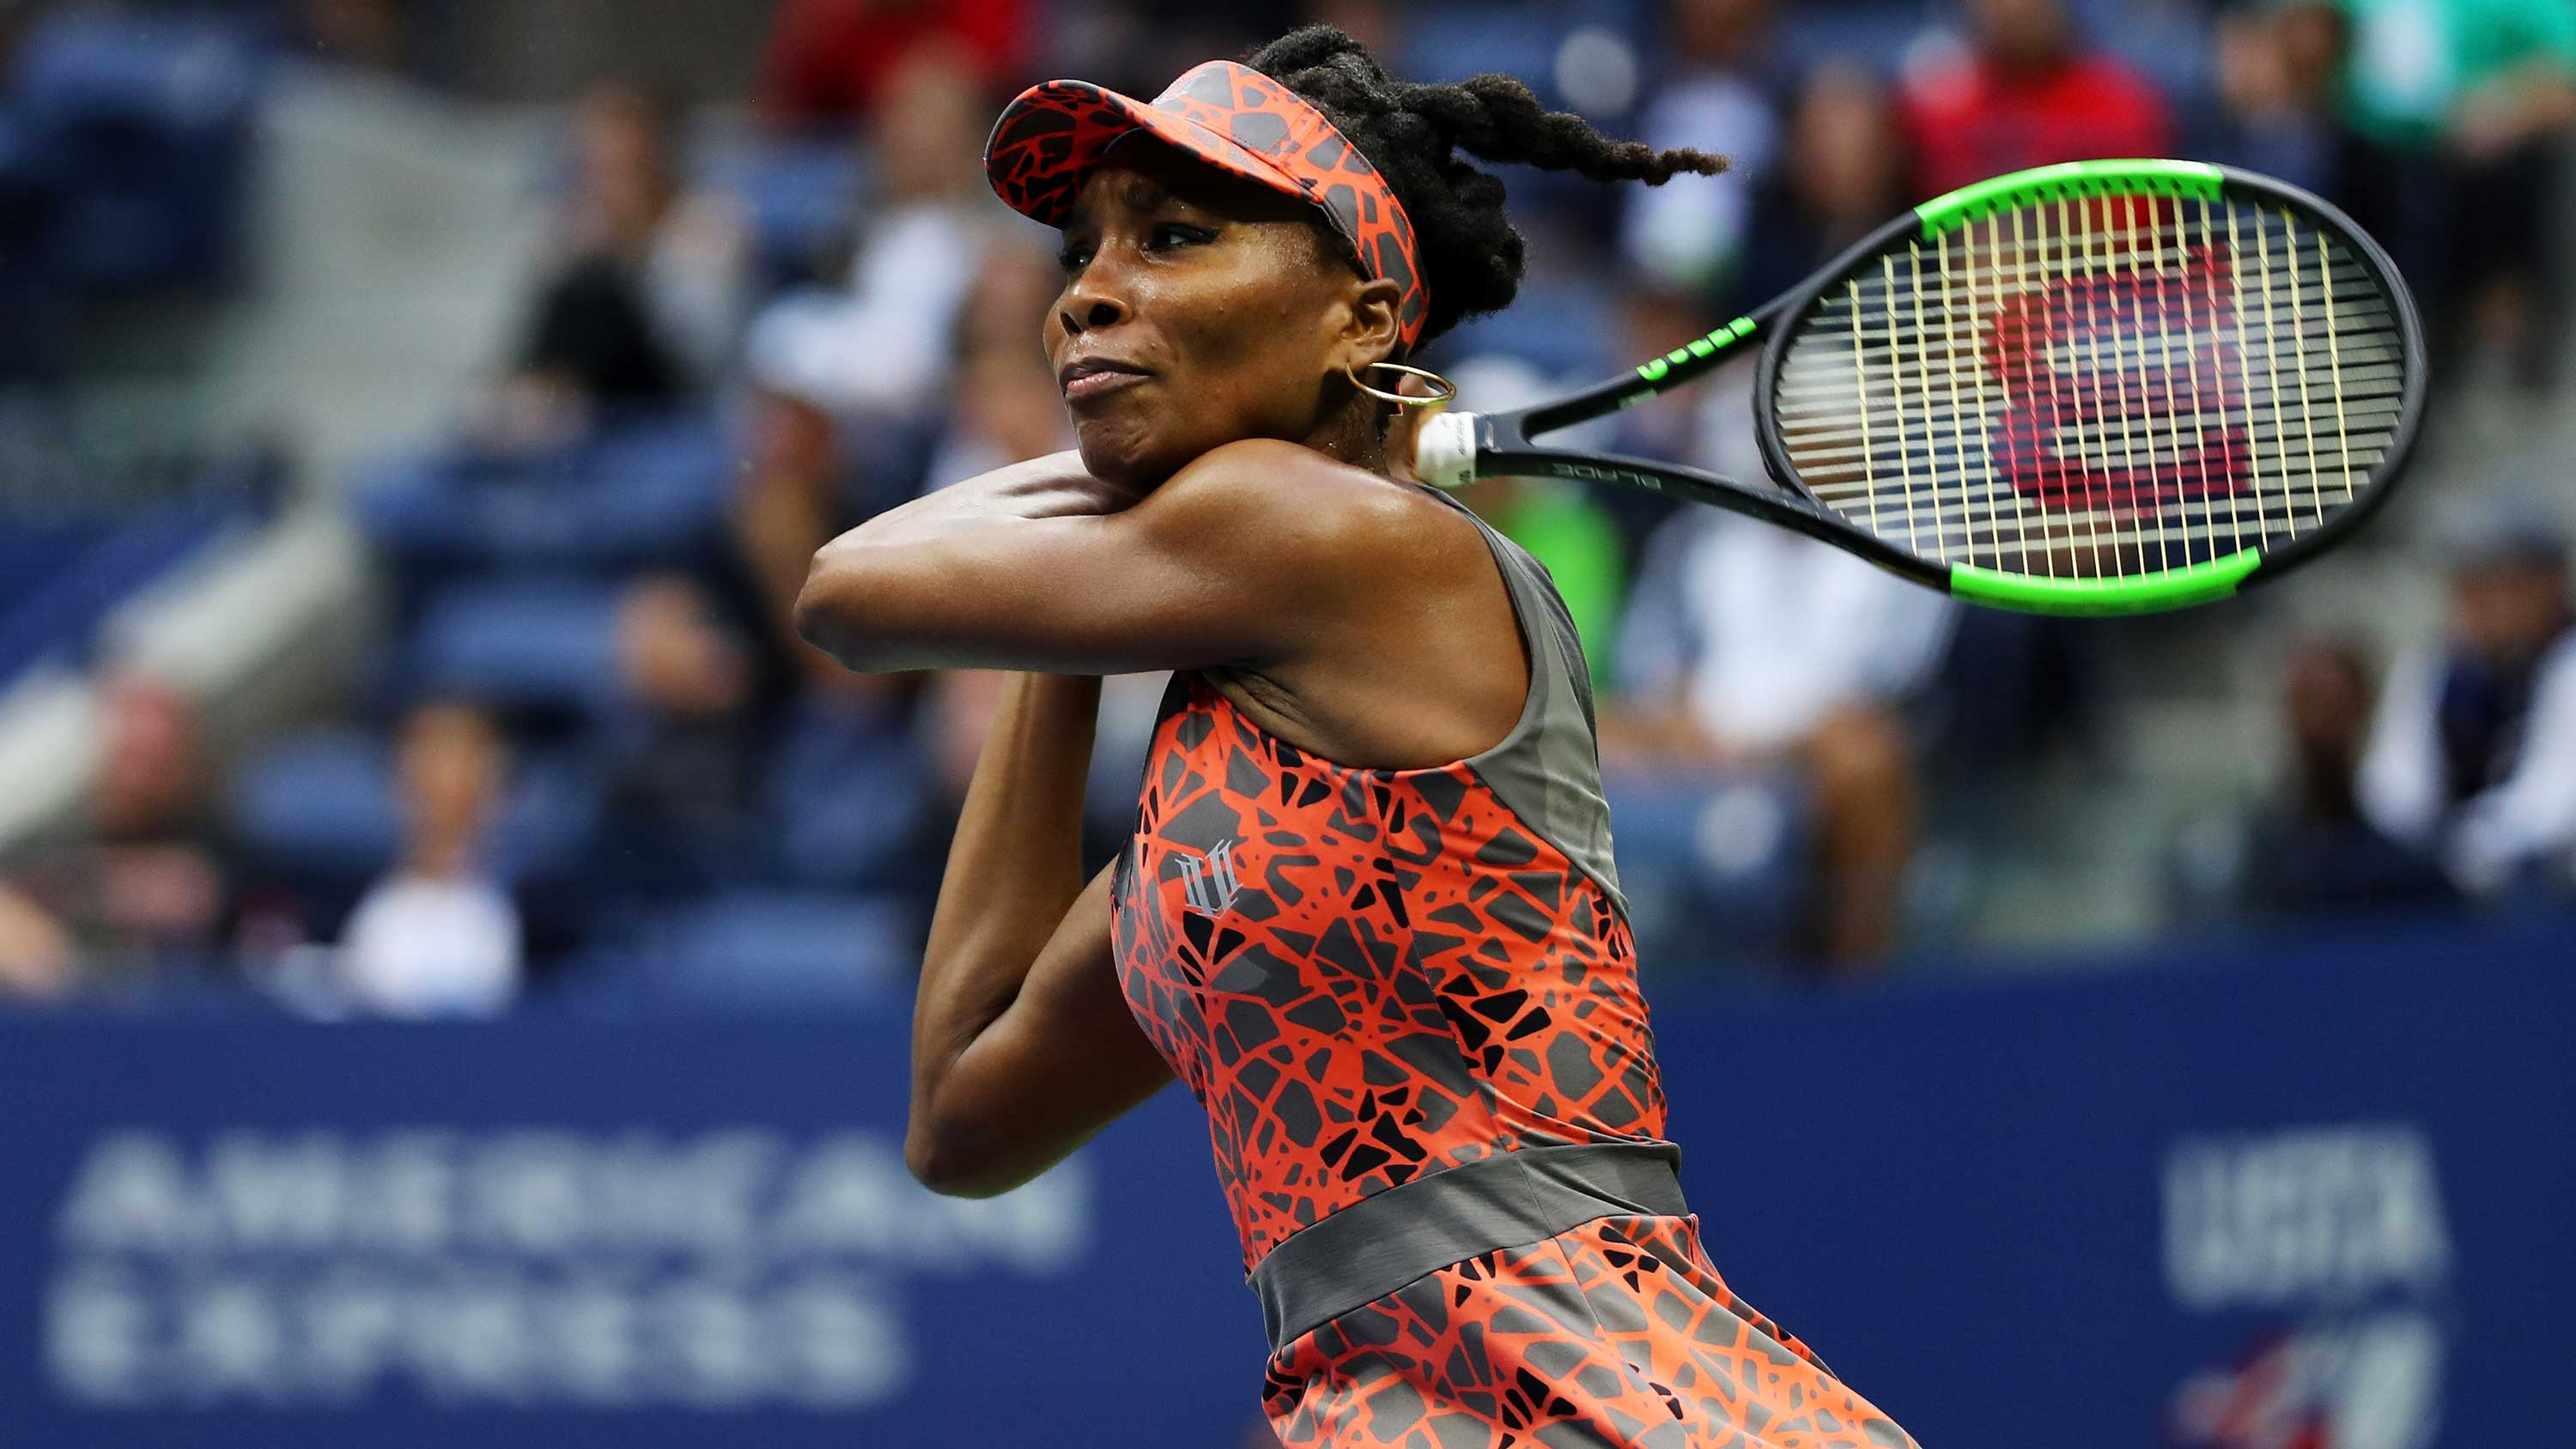 2017 US Open Tennis Championships – Day 7